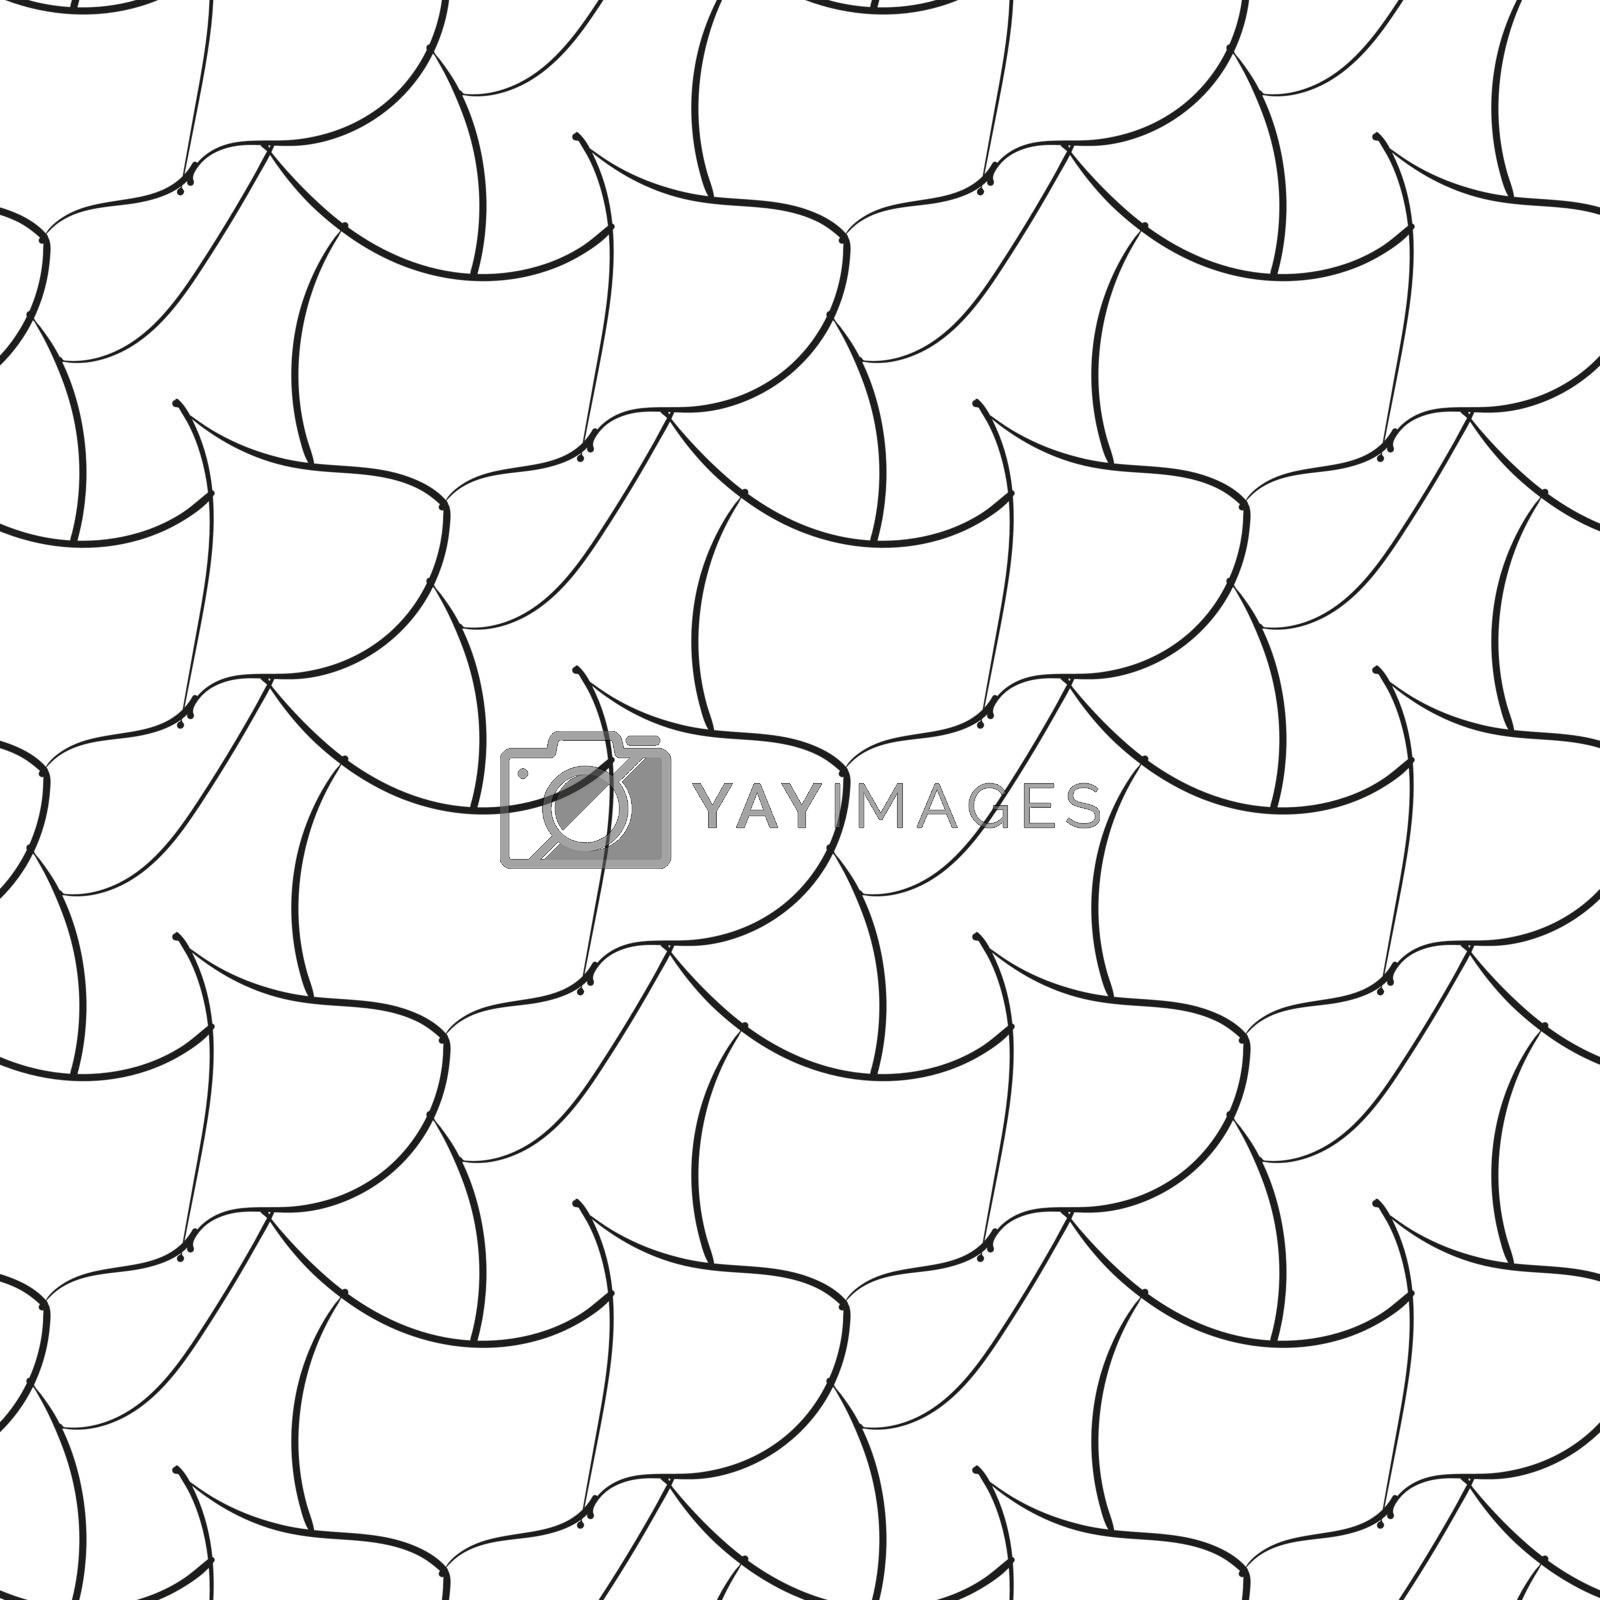 Black abstraction petals hand drawn seamless pattern